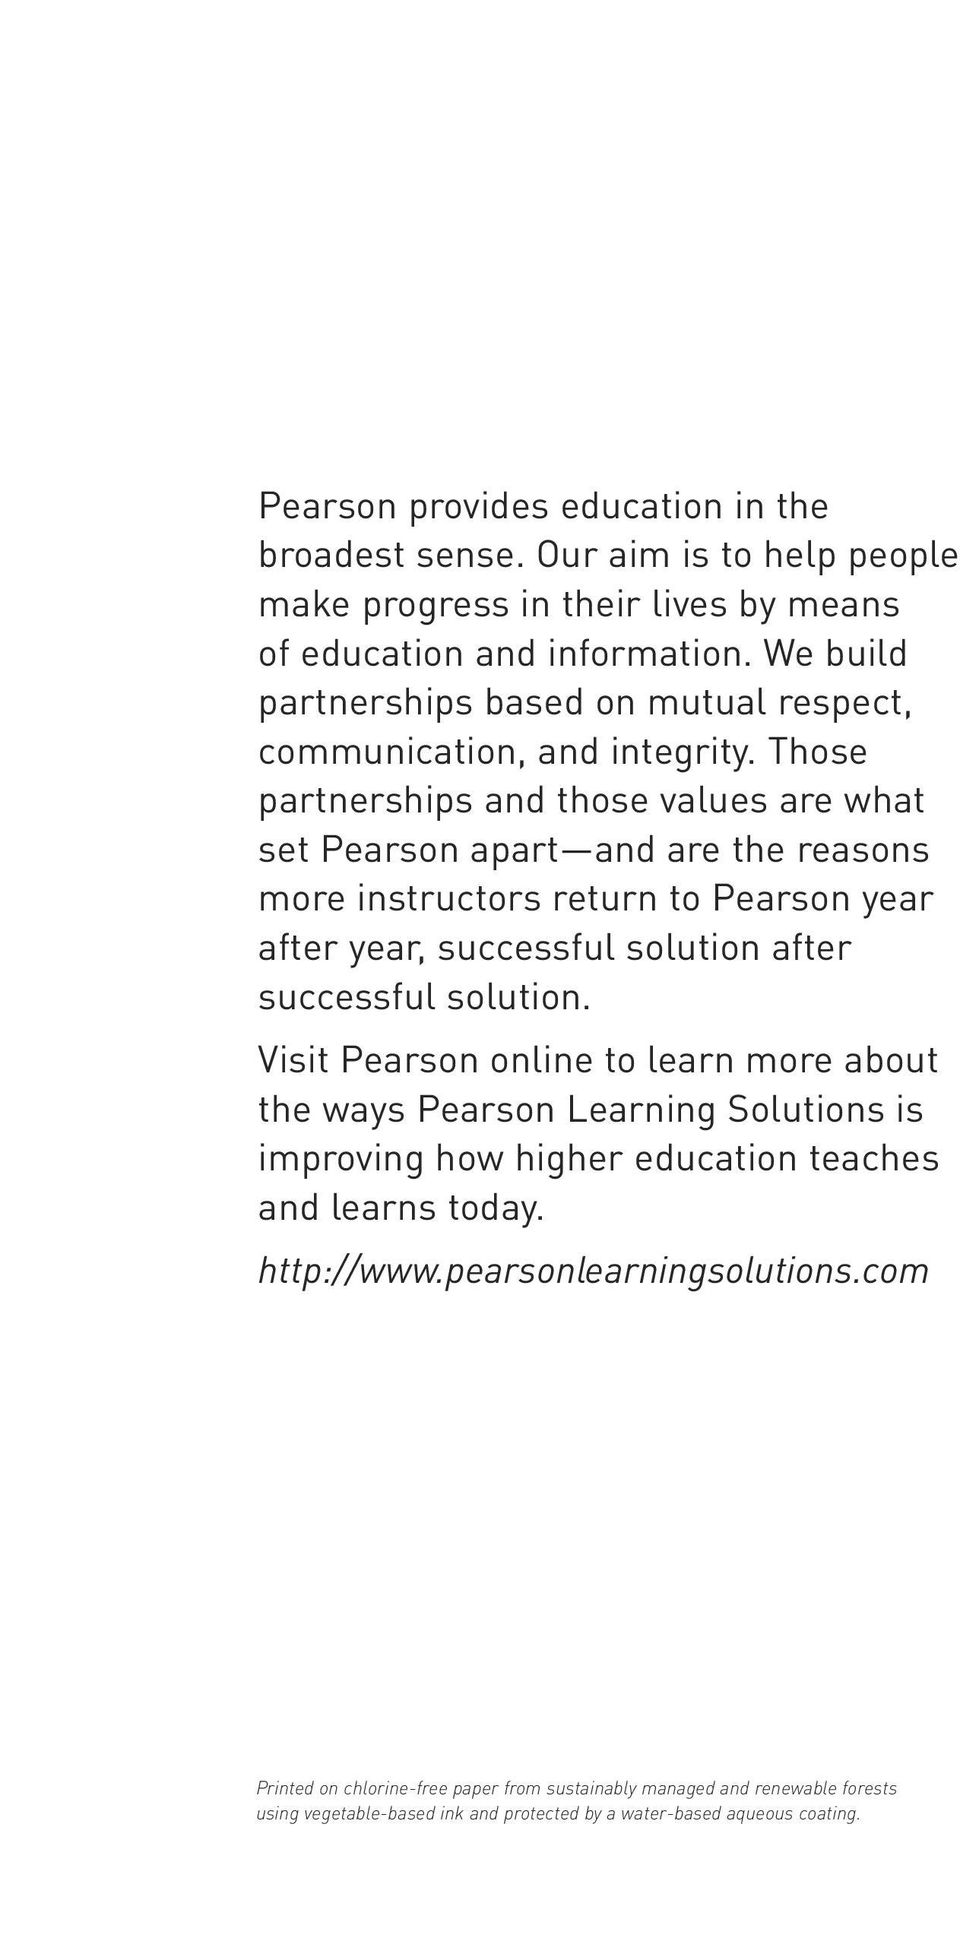 Those partnerships and those values are what set Pearson apart and are the reasons more instructors return to Pearson year after year, successful solution after successful solution.